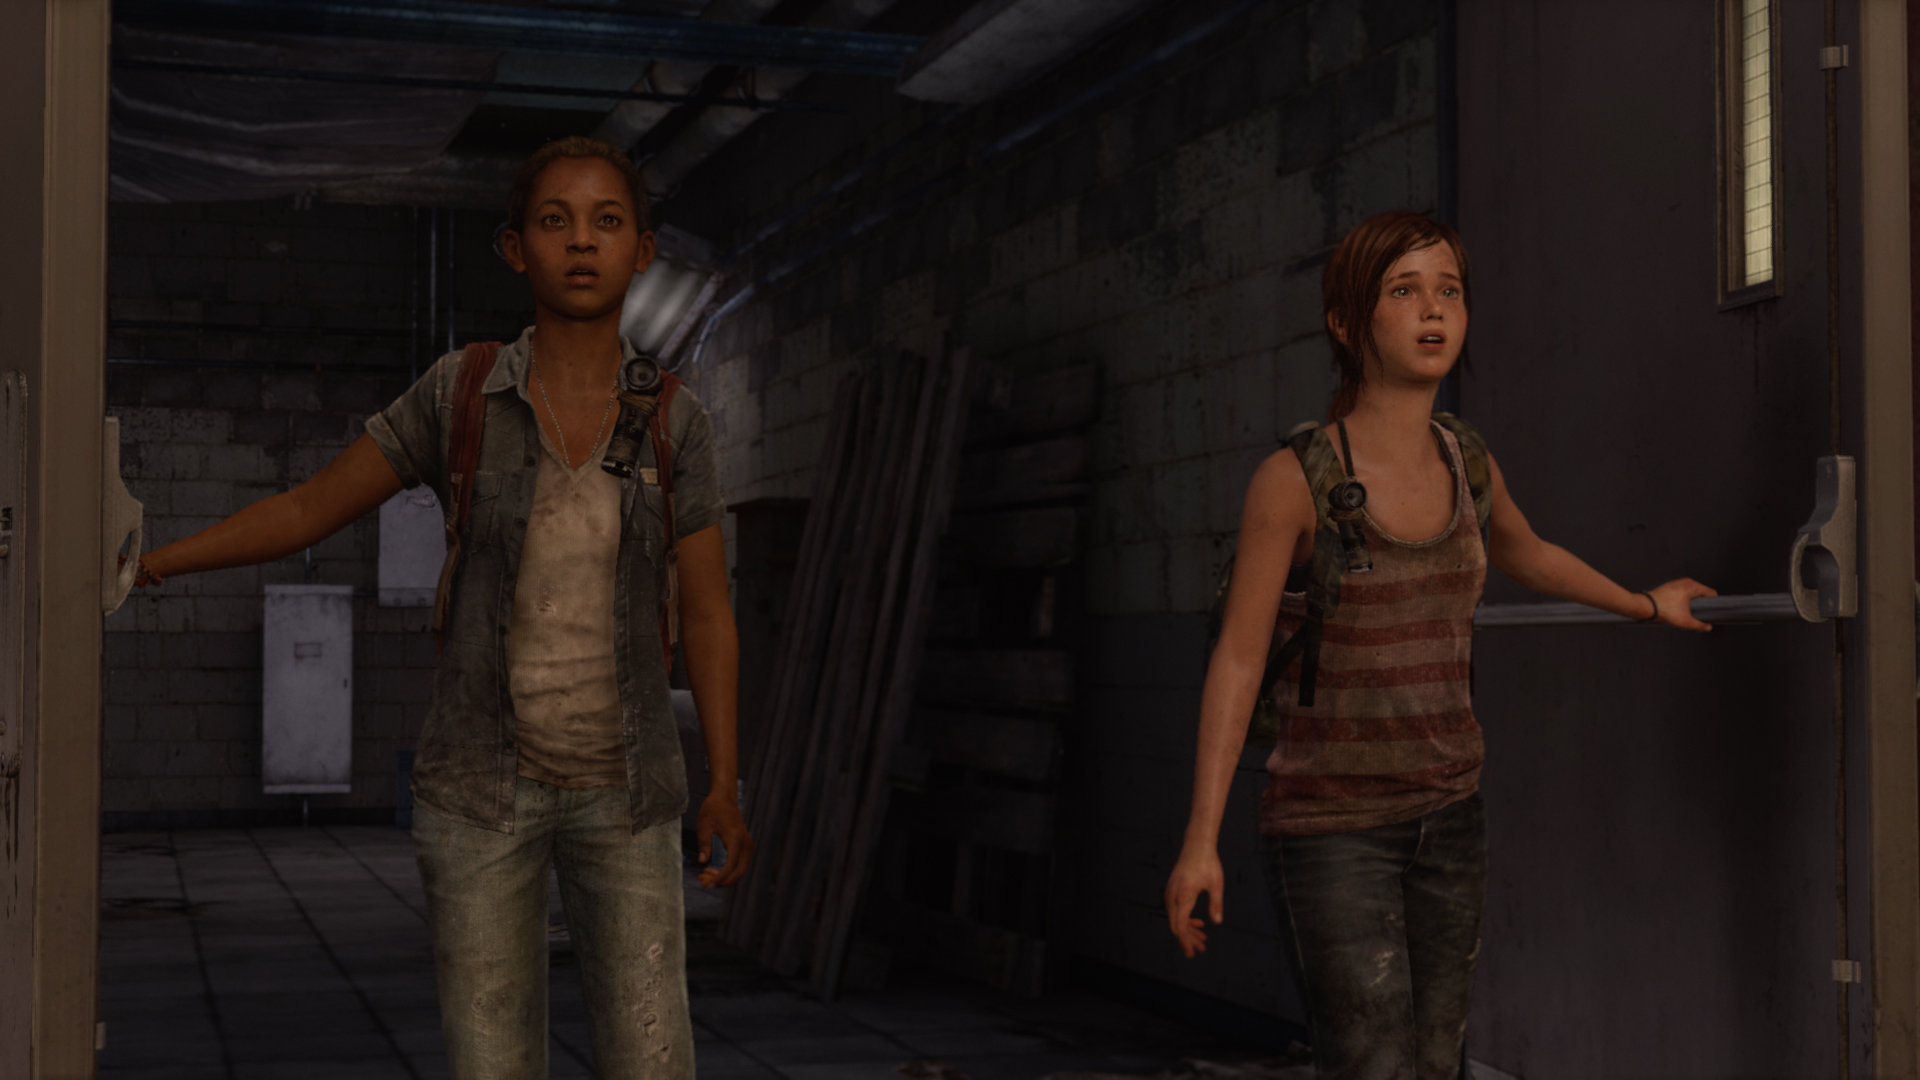 The Last of Us: Left Behind (2014)